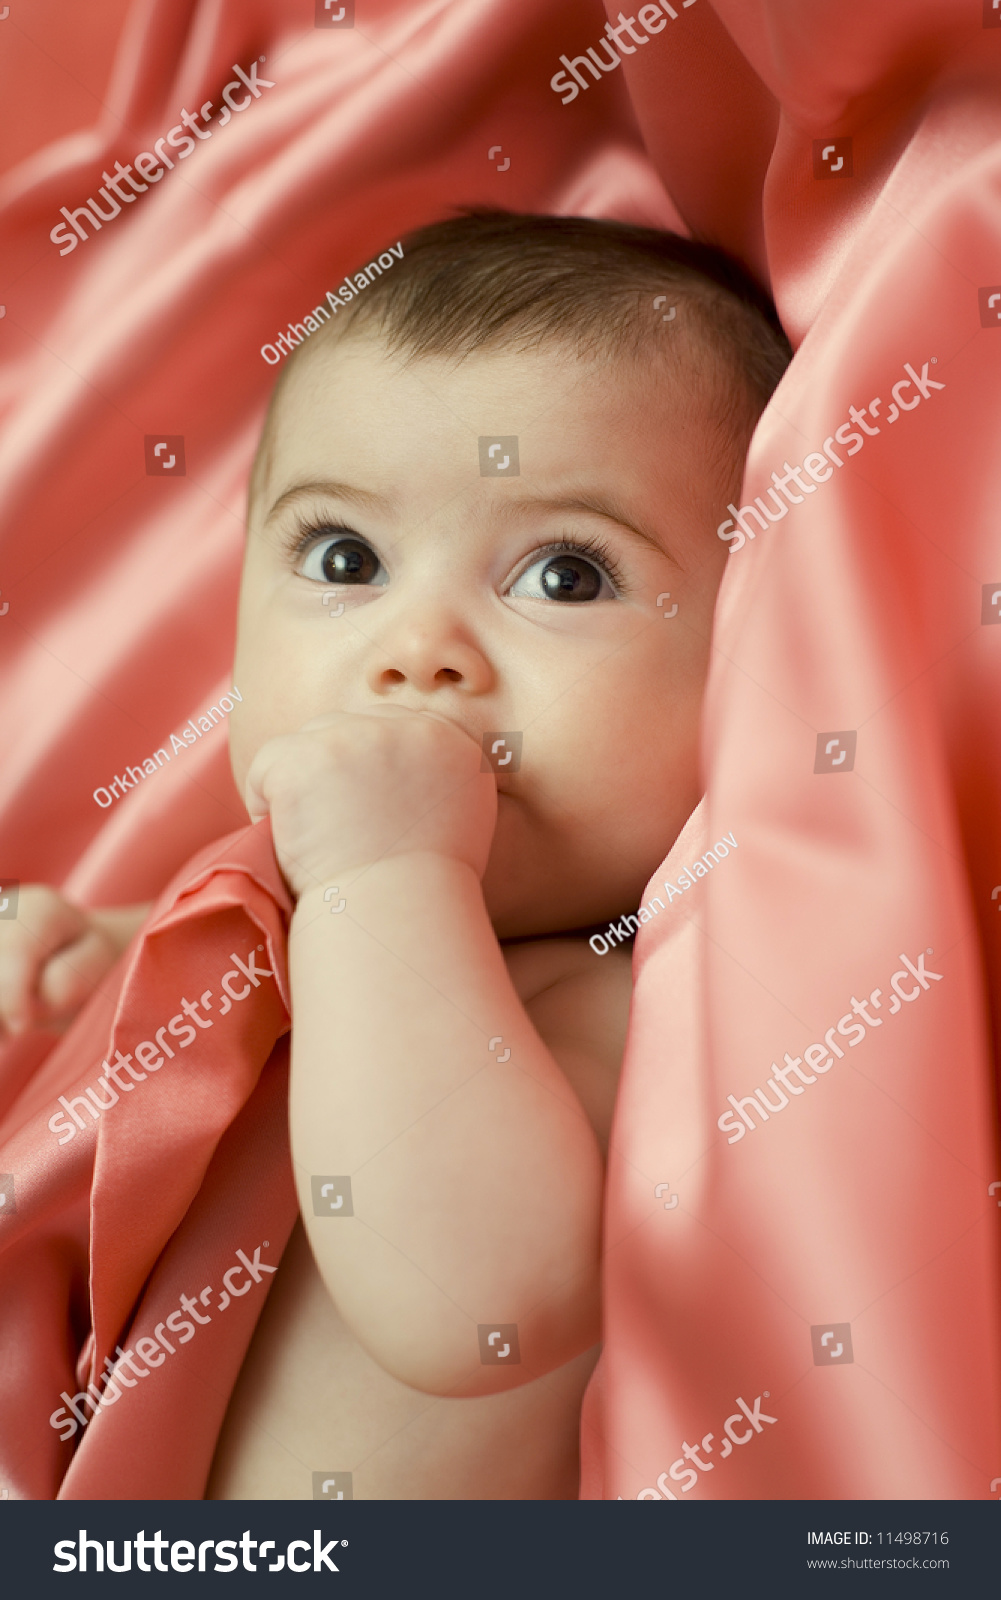 nice small baby stock photo (edit now) 11498716 - shutterstock